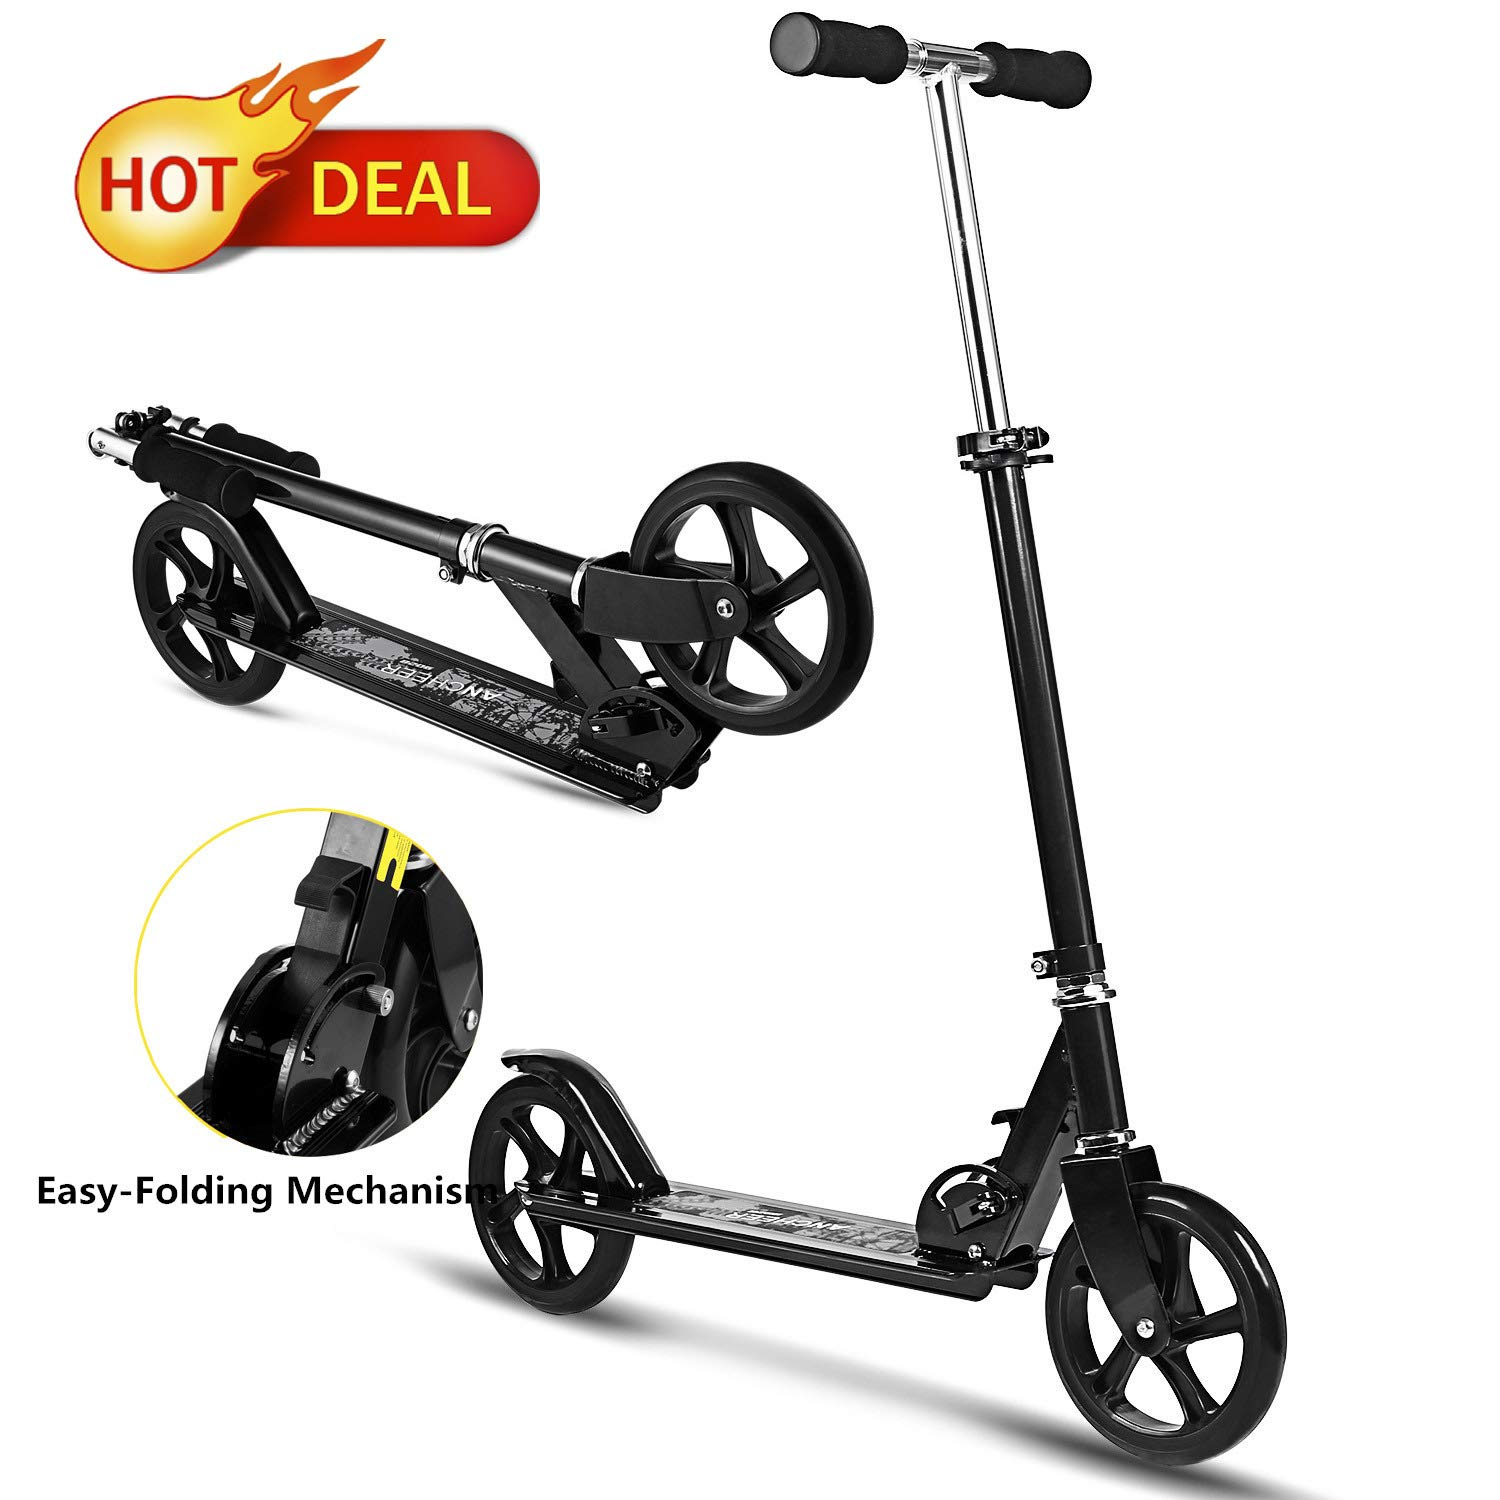 Juane Folding Kick Scooter with 3 Levels Adjustable Height 8 inches Big Wheels Rear Fender Brake Max Load 200LB Age 12 up for Adults Teens Kids (Black) by Juane